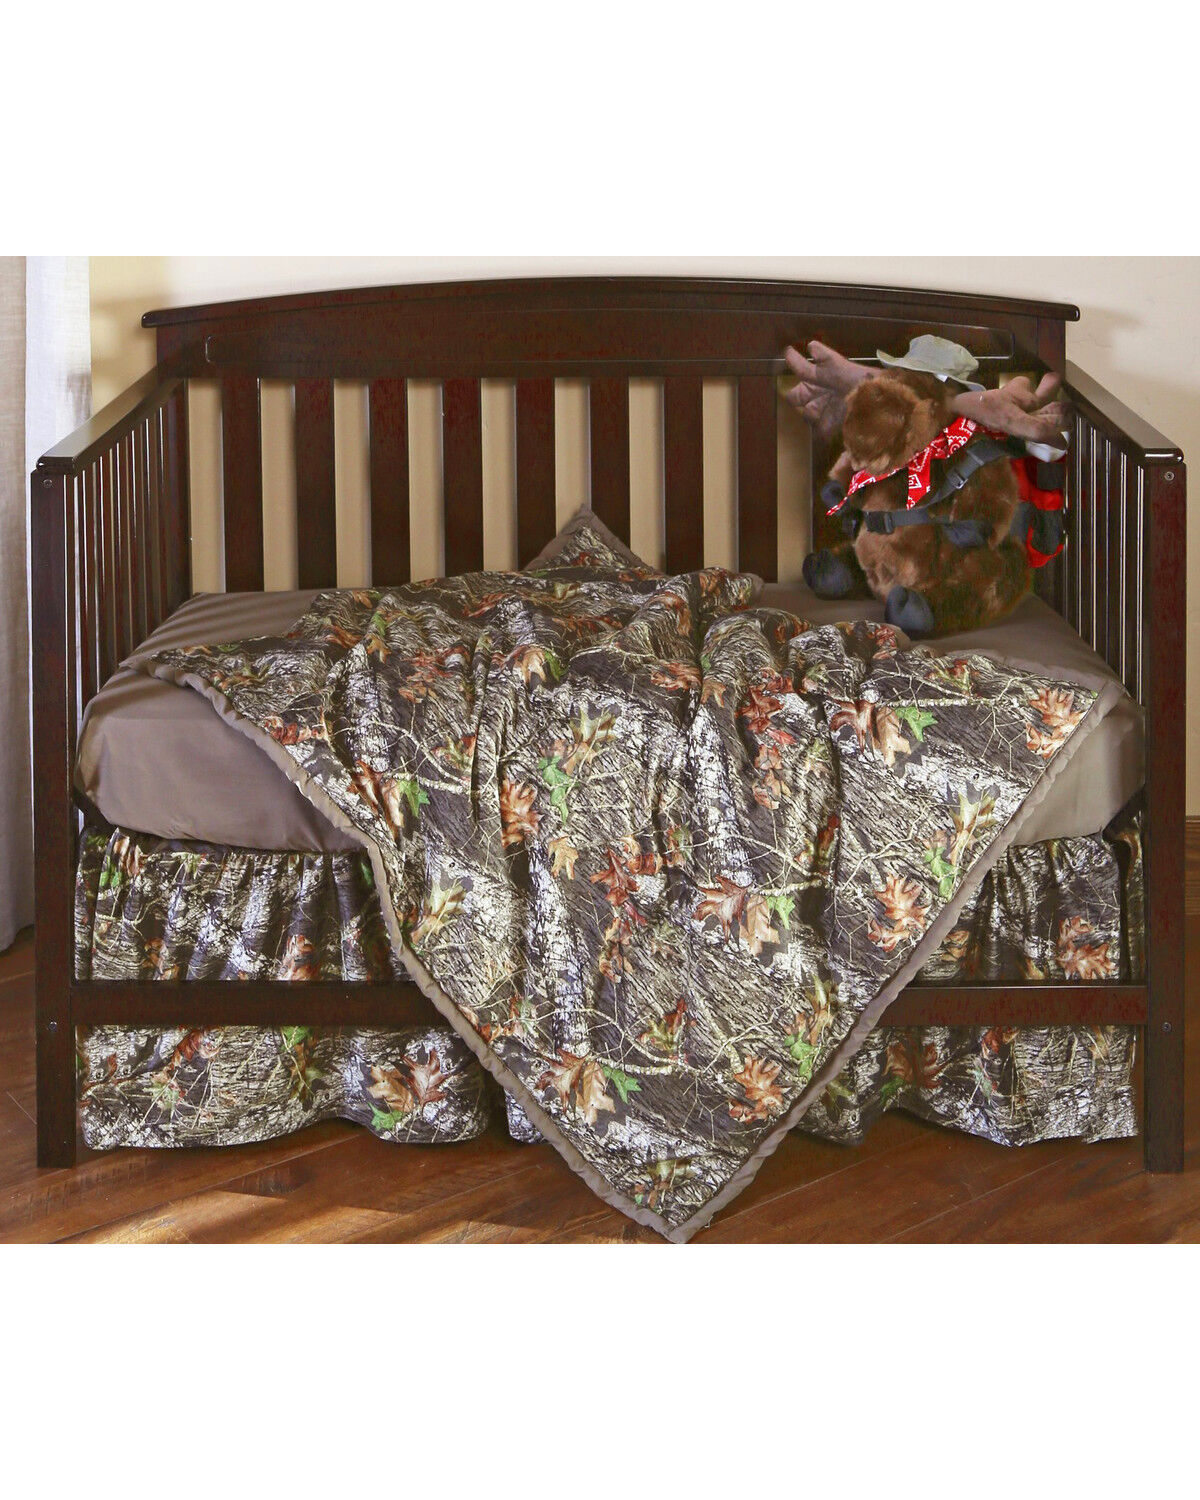 Carstens Mossy Oak Break Up Camo Crib Set   3 Piece , Green, Hi